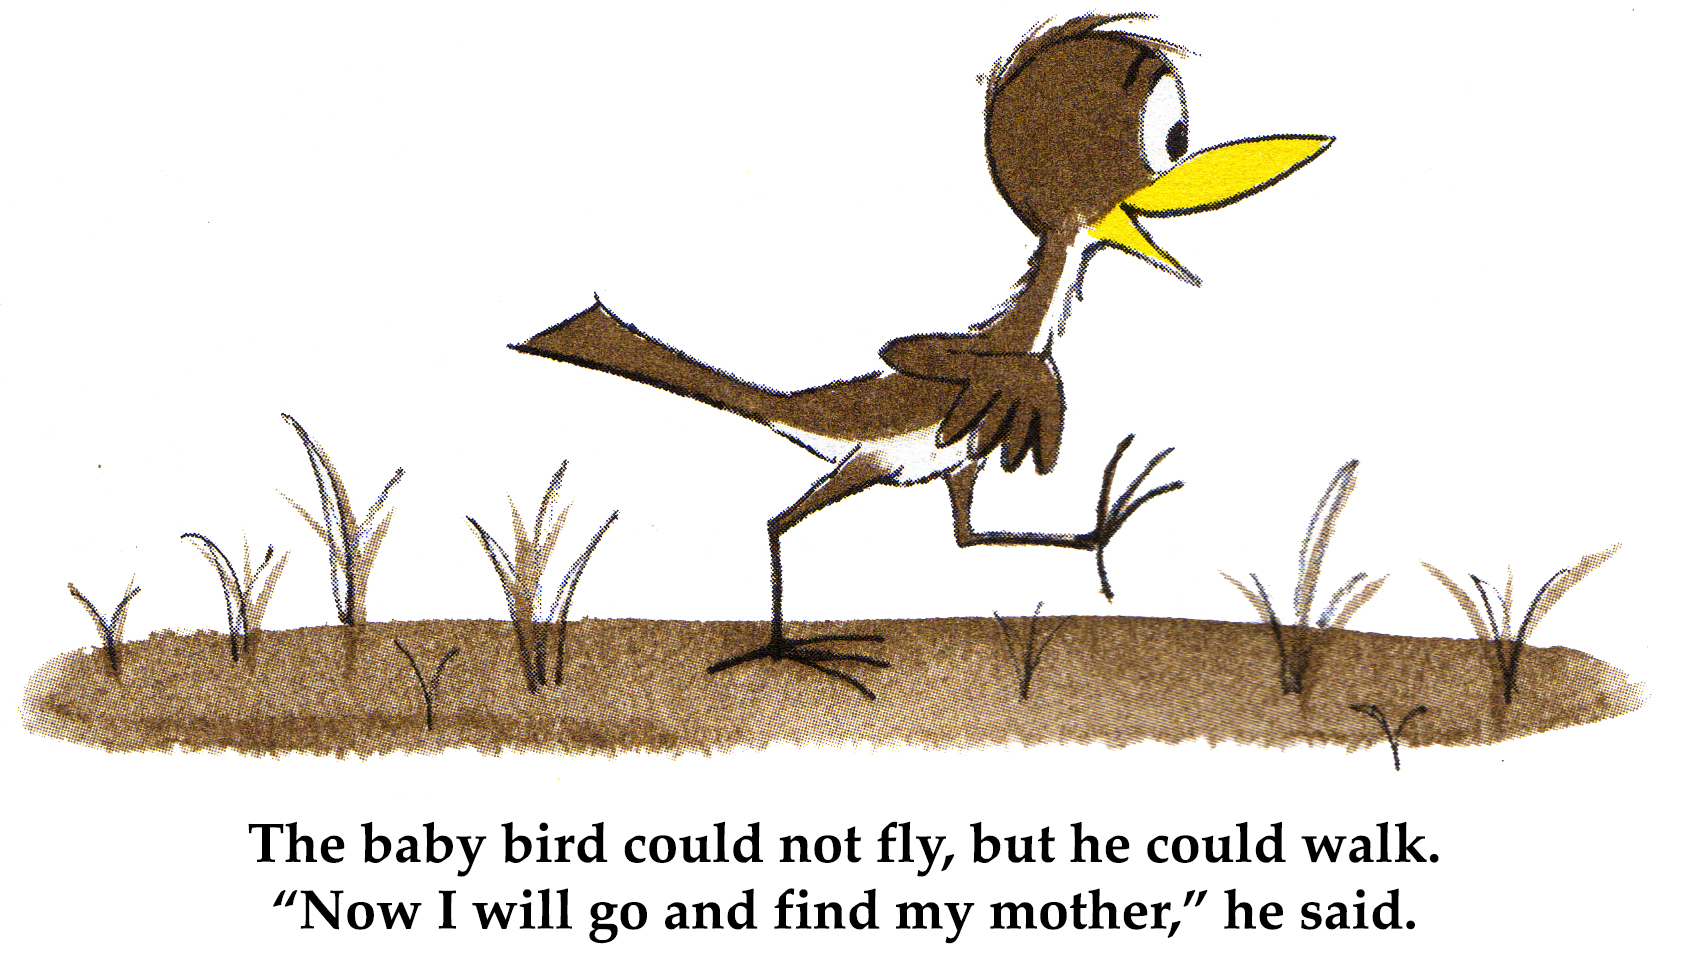 The baby bird could not fly, but he could walk.